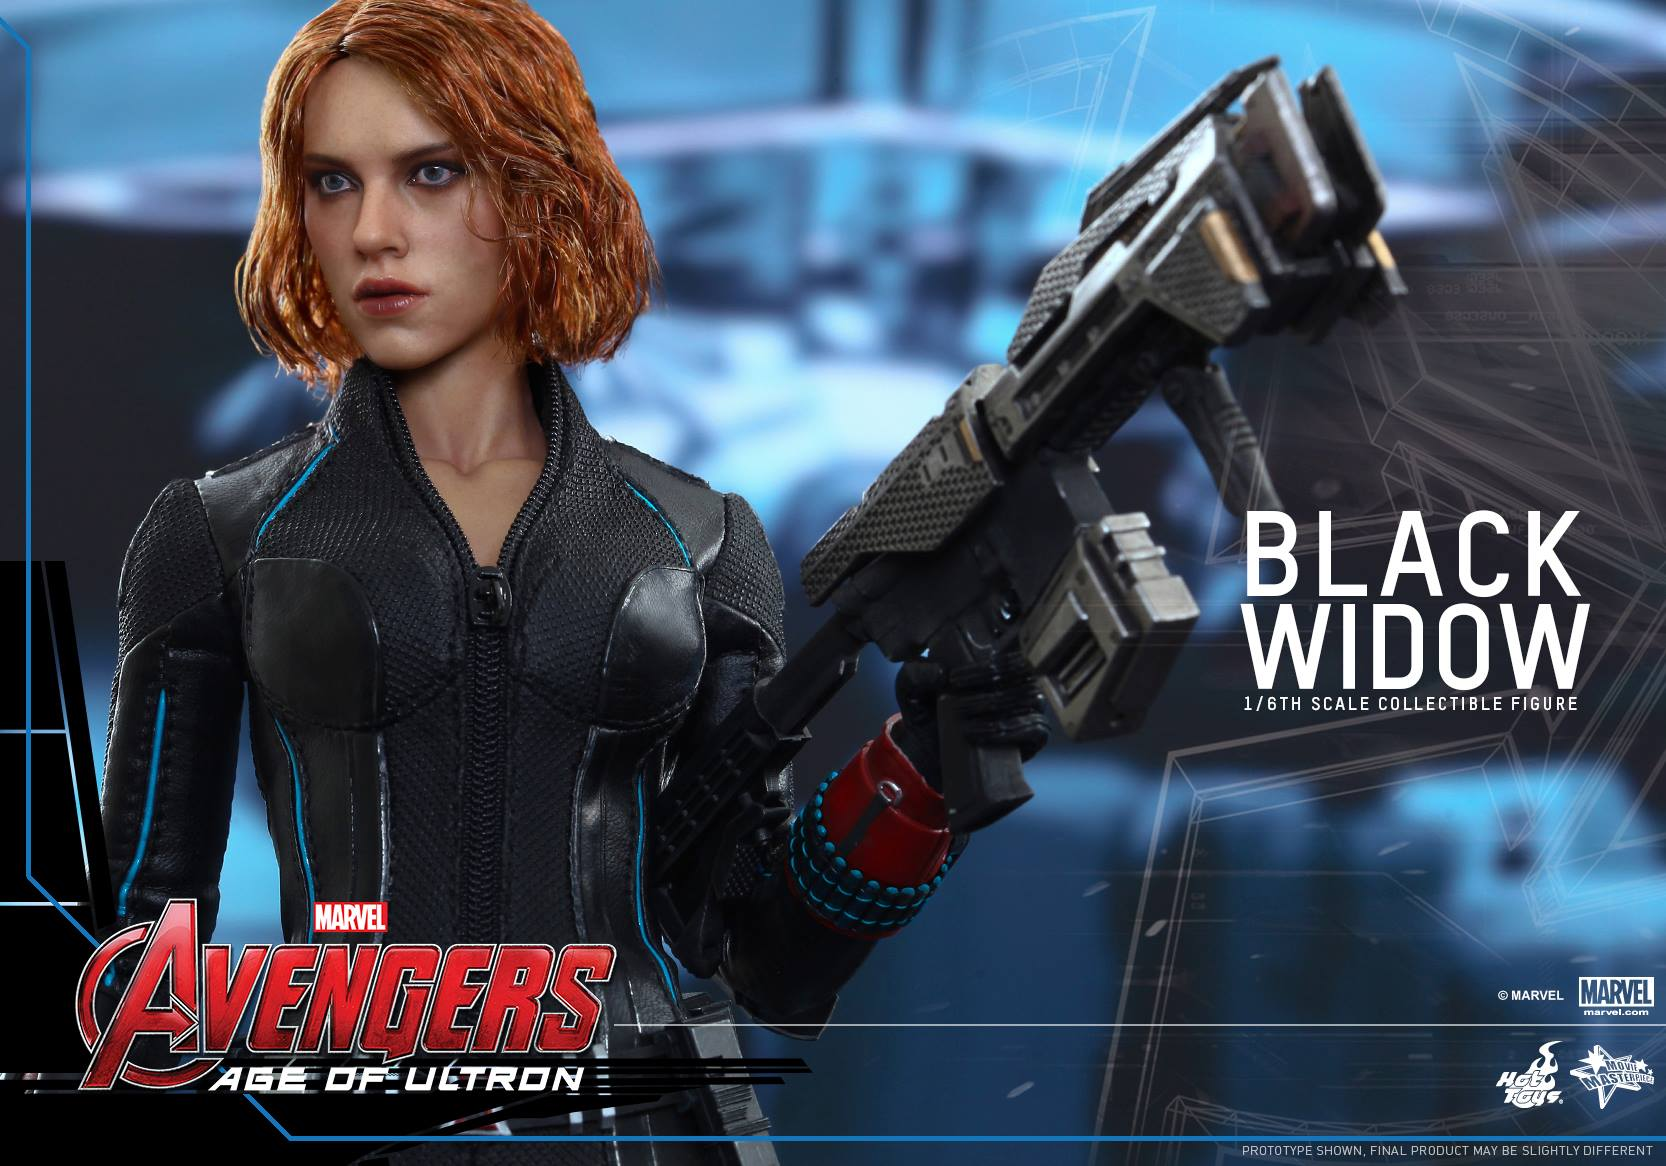 Hot Toys Black Widow Avengers: Age of Ultron